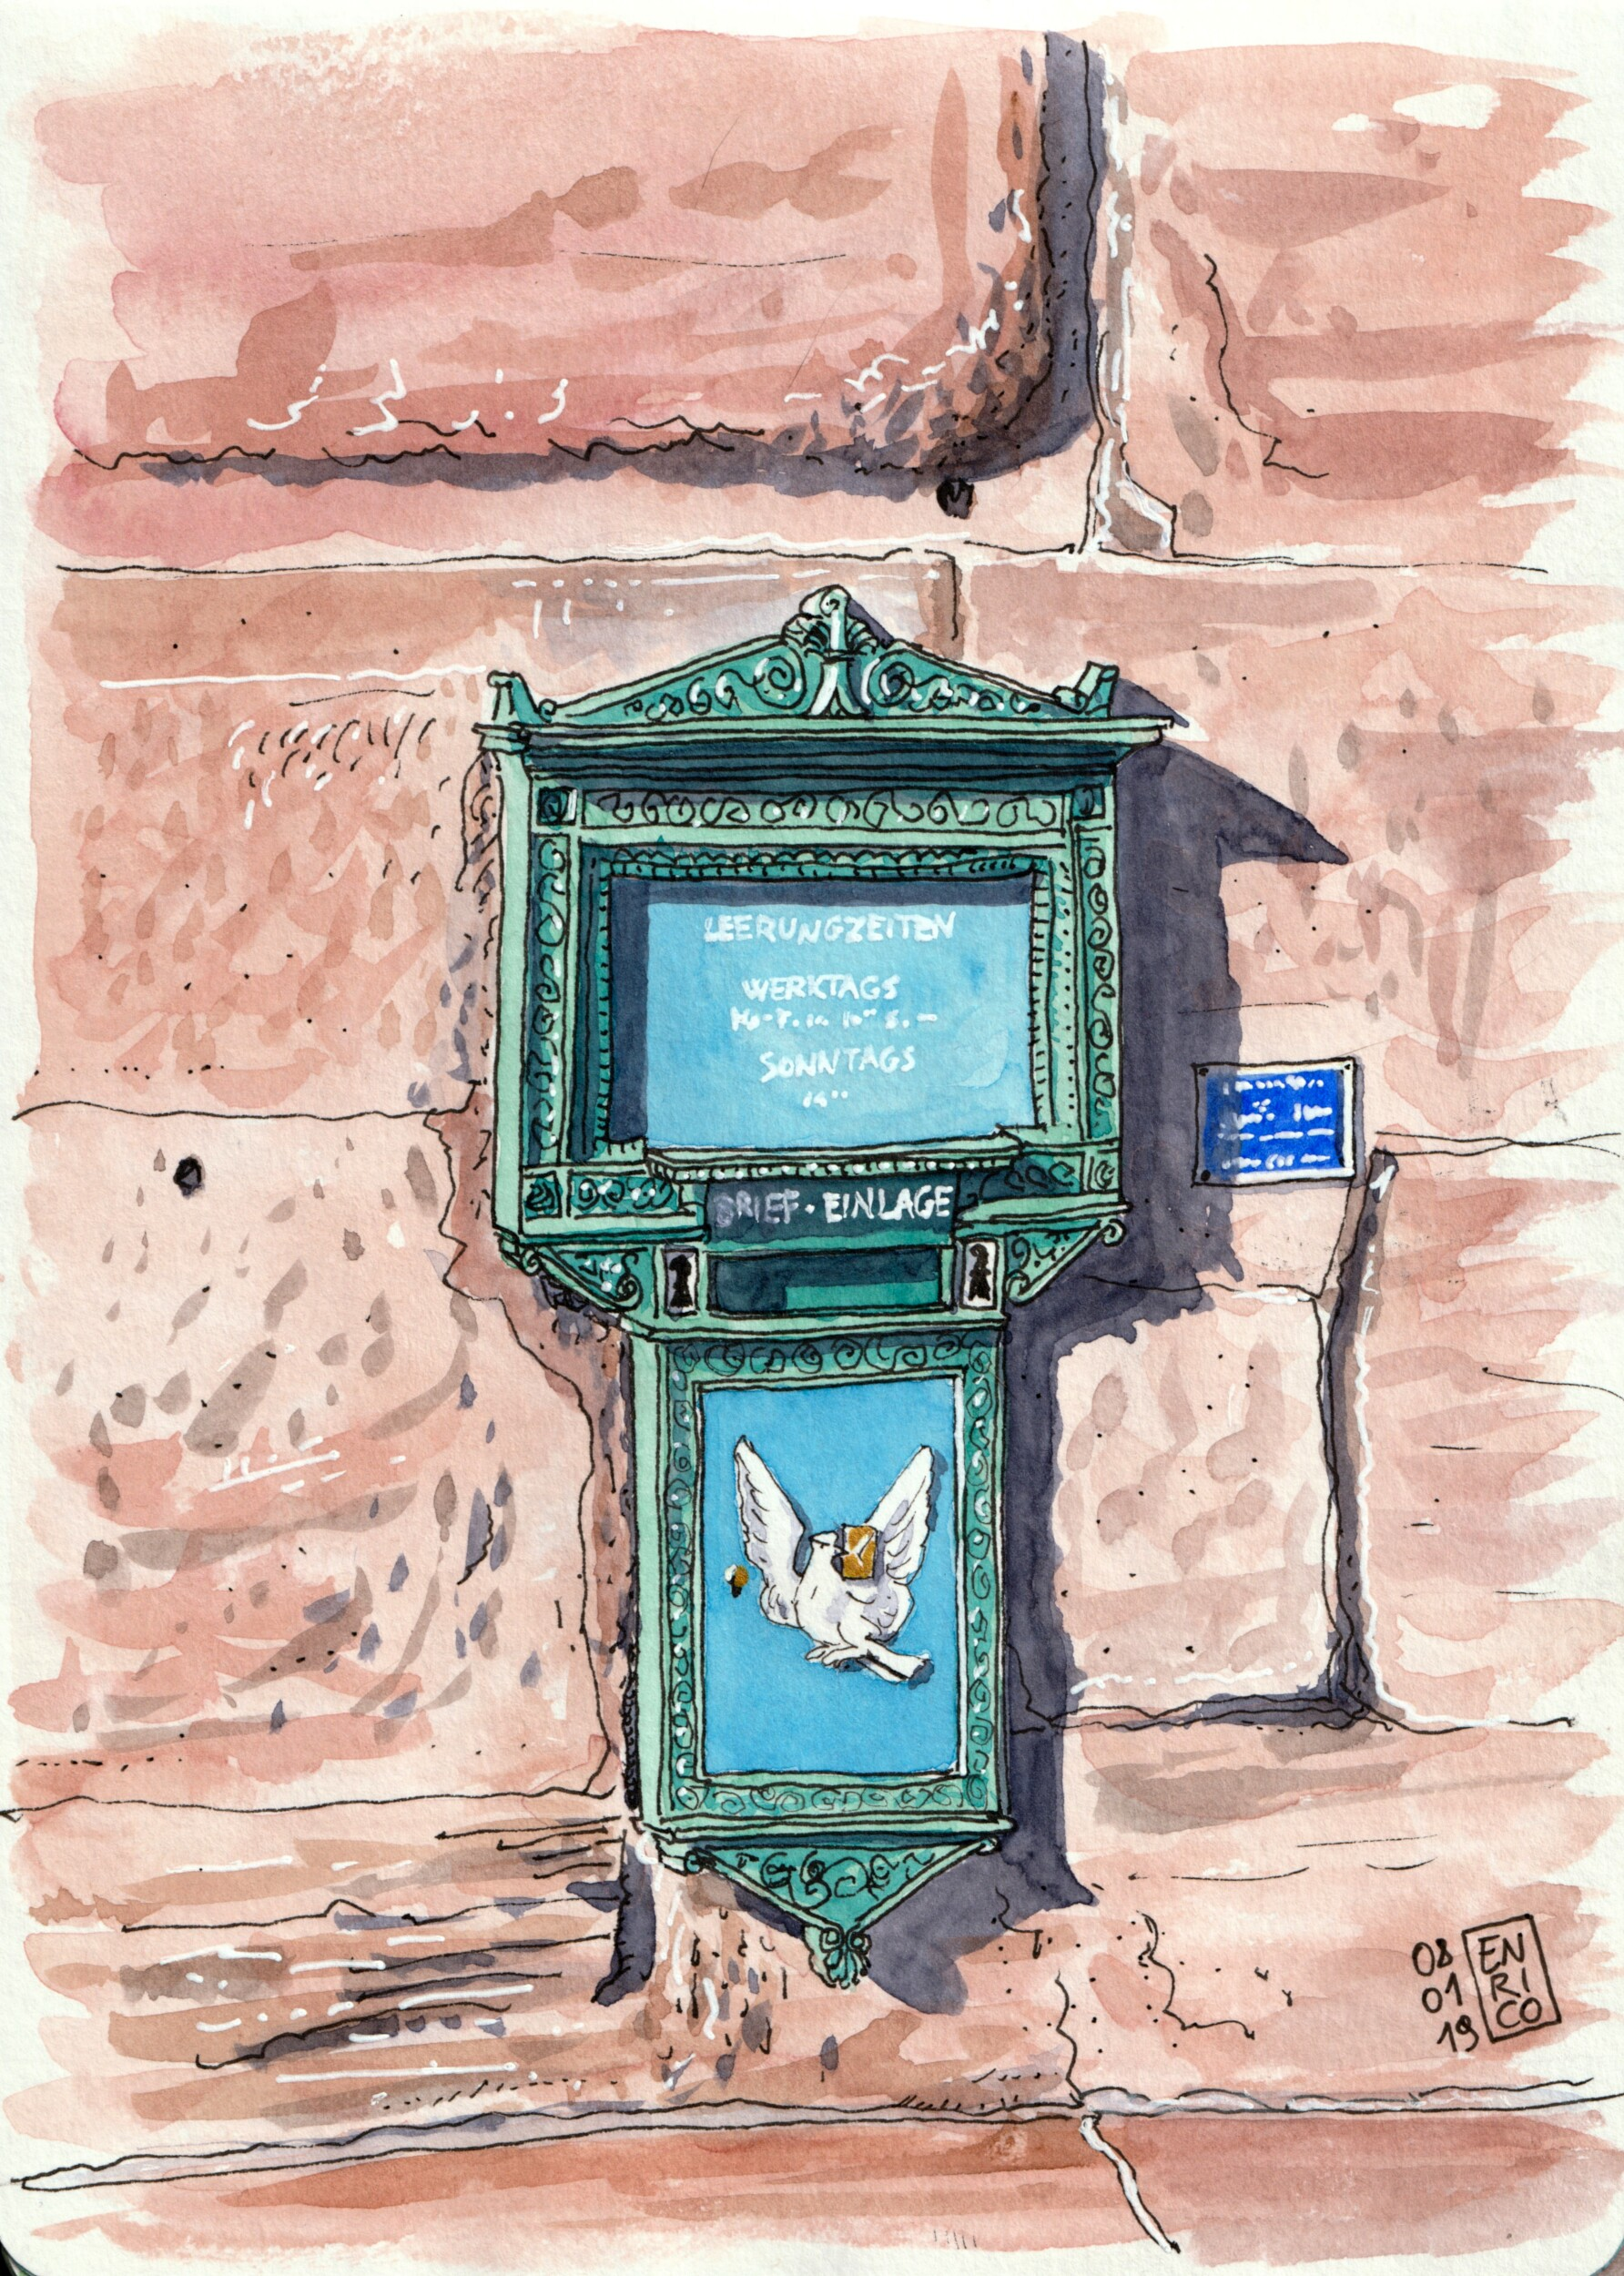 "This is one of the six ""Basel dove"" mailboxes scattered around town. They were designed in mid 19th century by a famous architect and are still in service. This one is attached to the inner side of Spalentor."